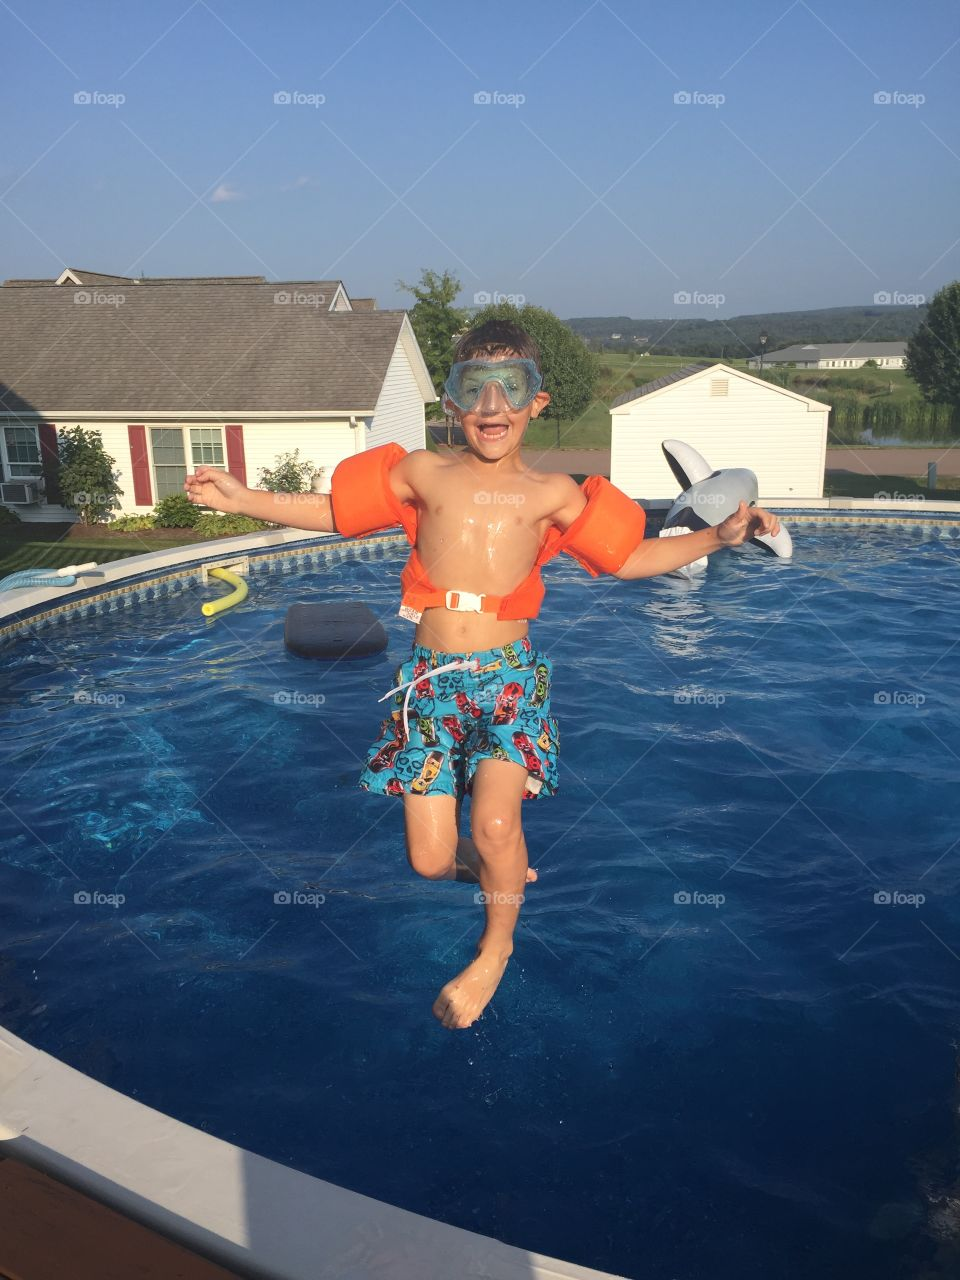 Happy boy jumping in swimming pool